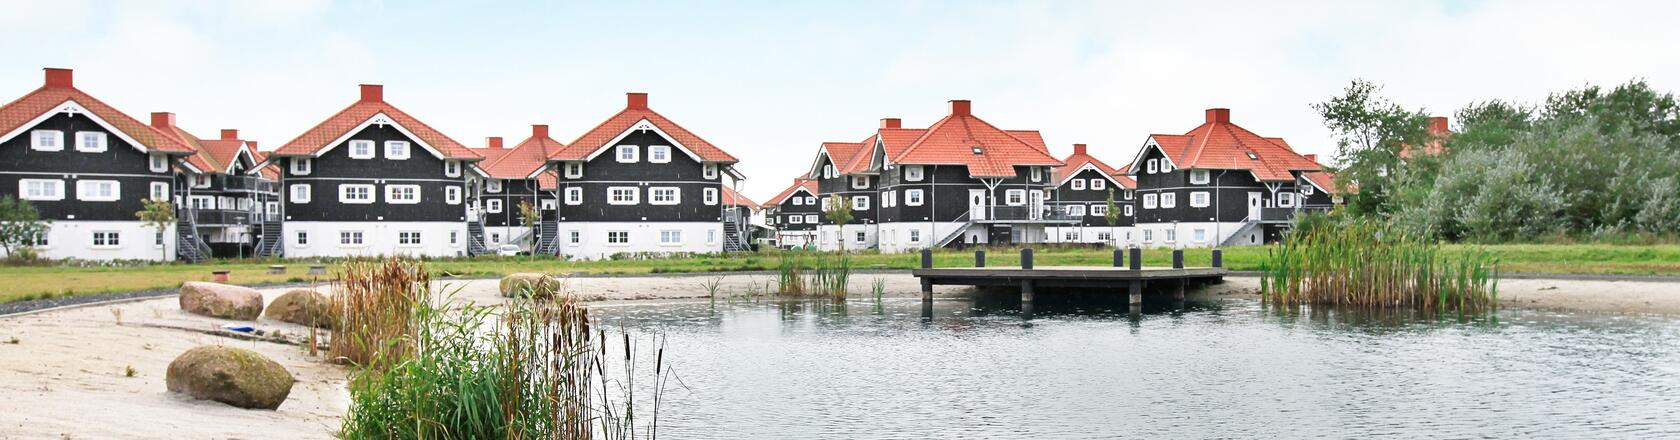 Dalby Bugten in Denmark — Rent a holiday home with DanCenter